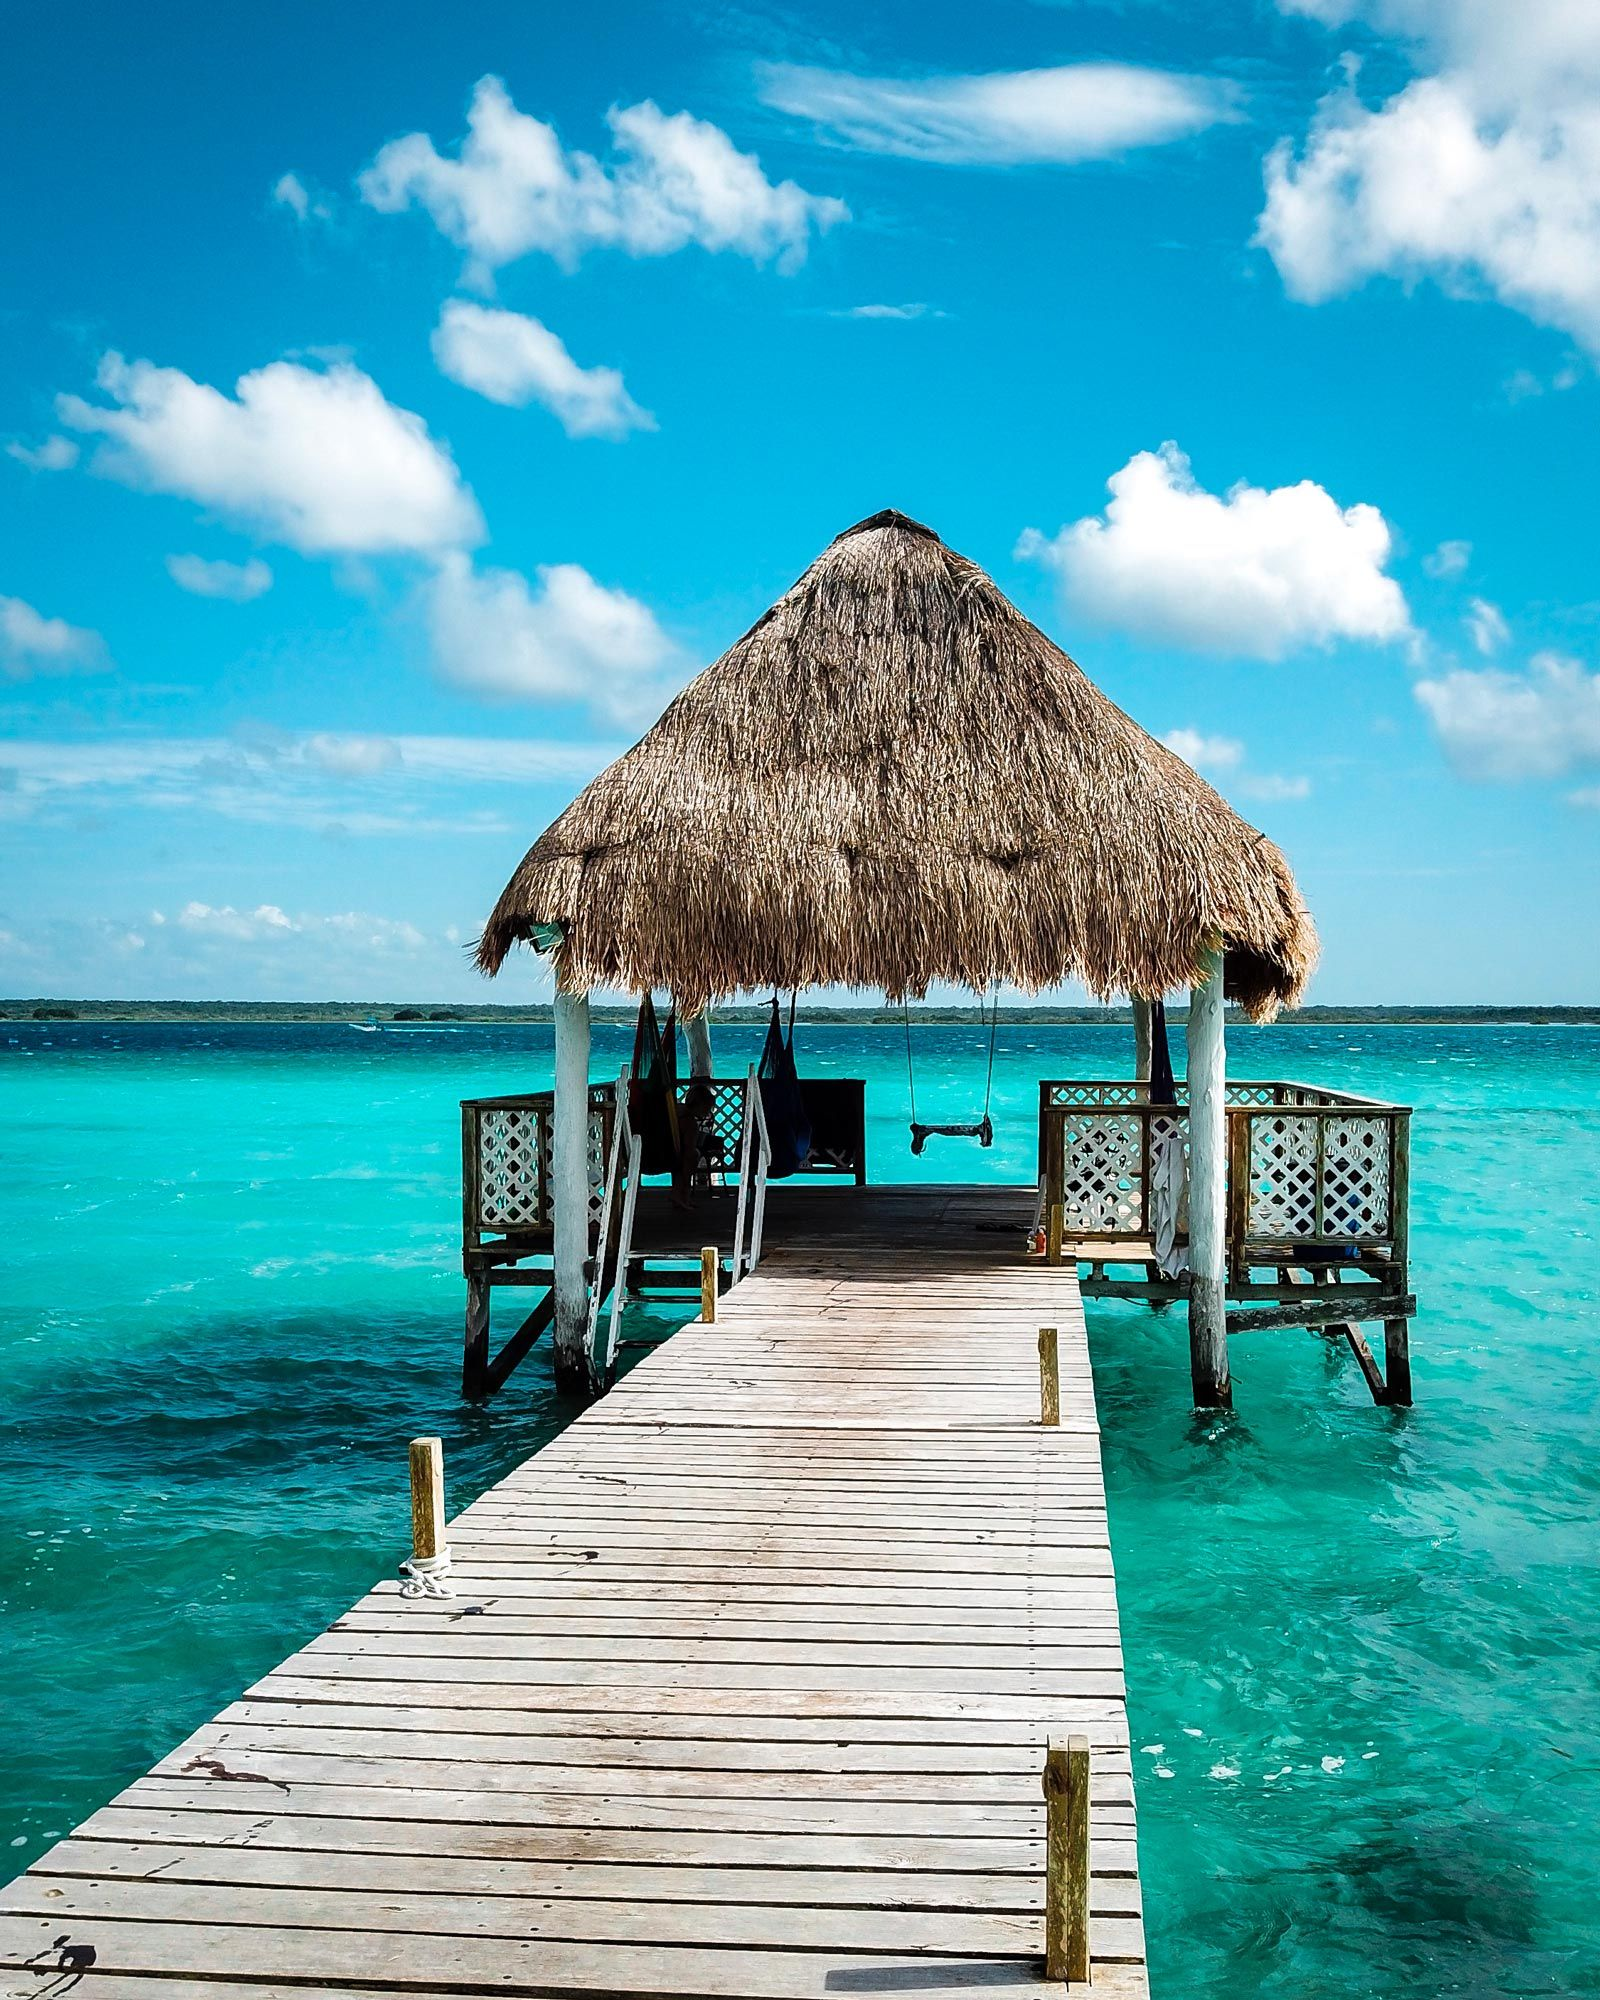 Bacalar The Relax Mecca: A Hundred Reasons To Disconnect And Enjoy The Nature